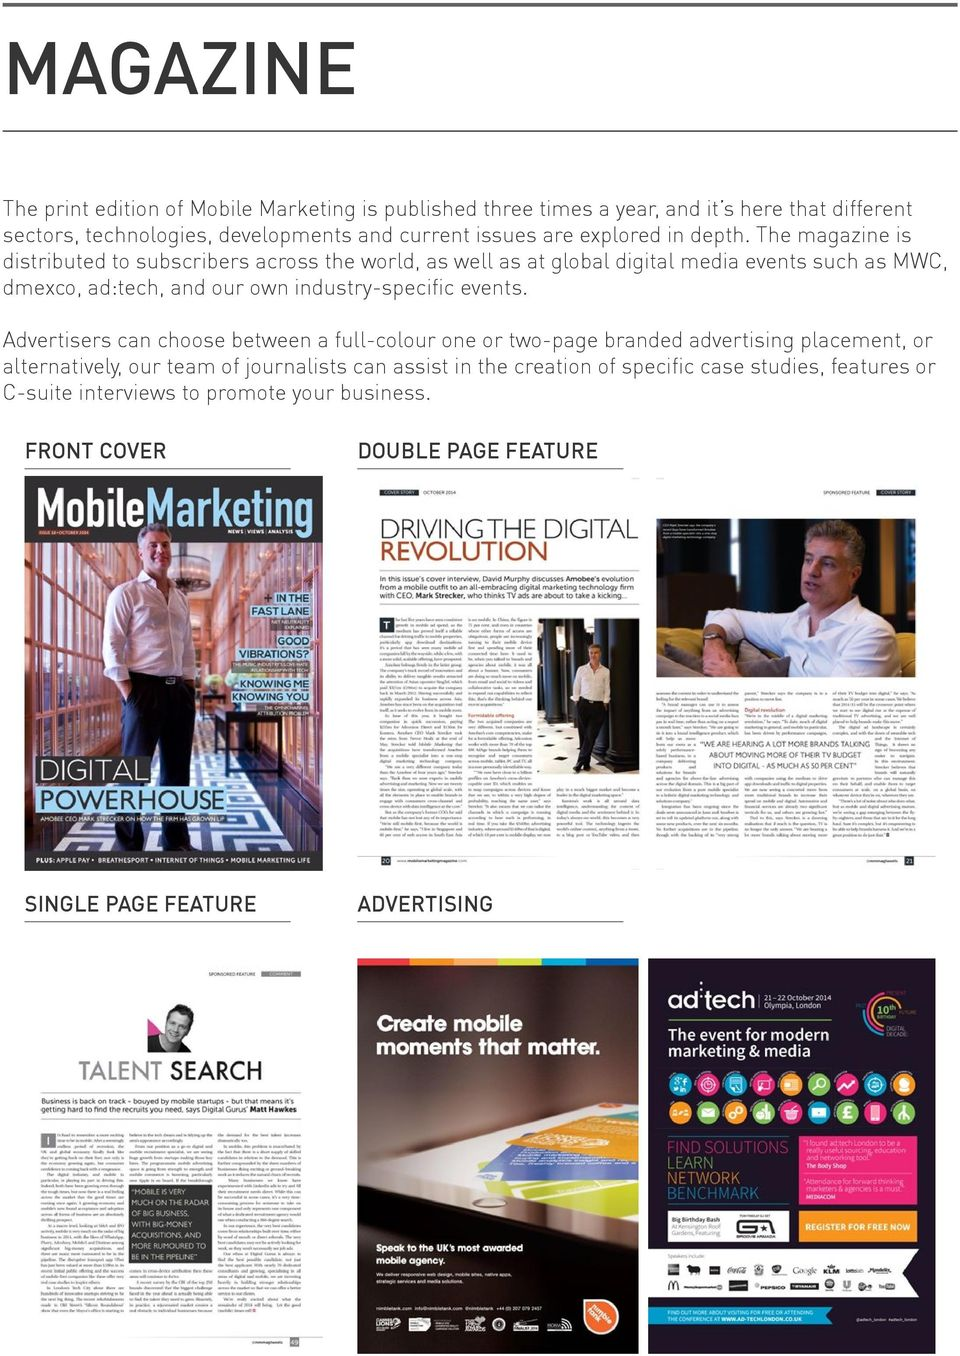 The magazine is distributed to subscribers across the world, as well as at global digital media events such as MWC, dmexco, ad:tech, and our own industry-specific